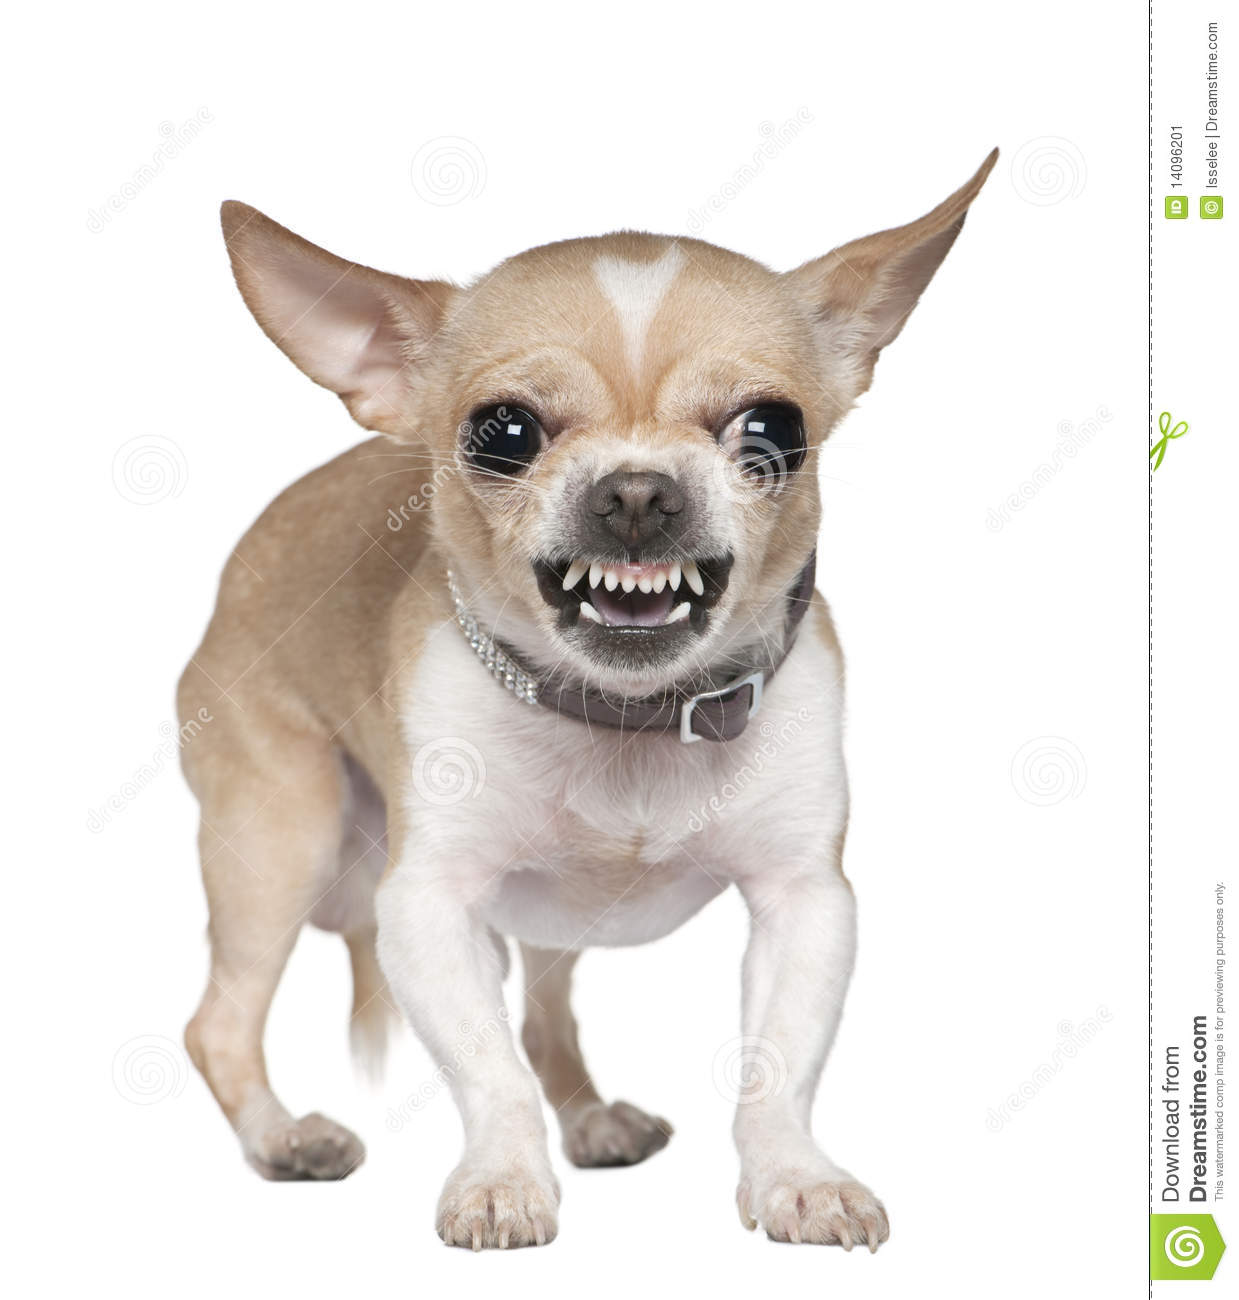 Angry Chihuahua growling, 2 years old, in front of white background.